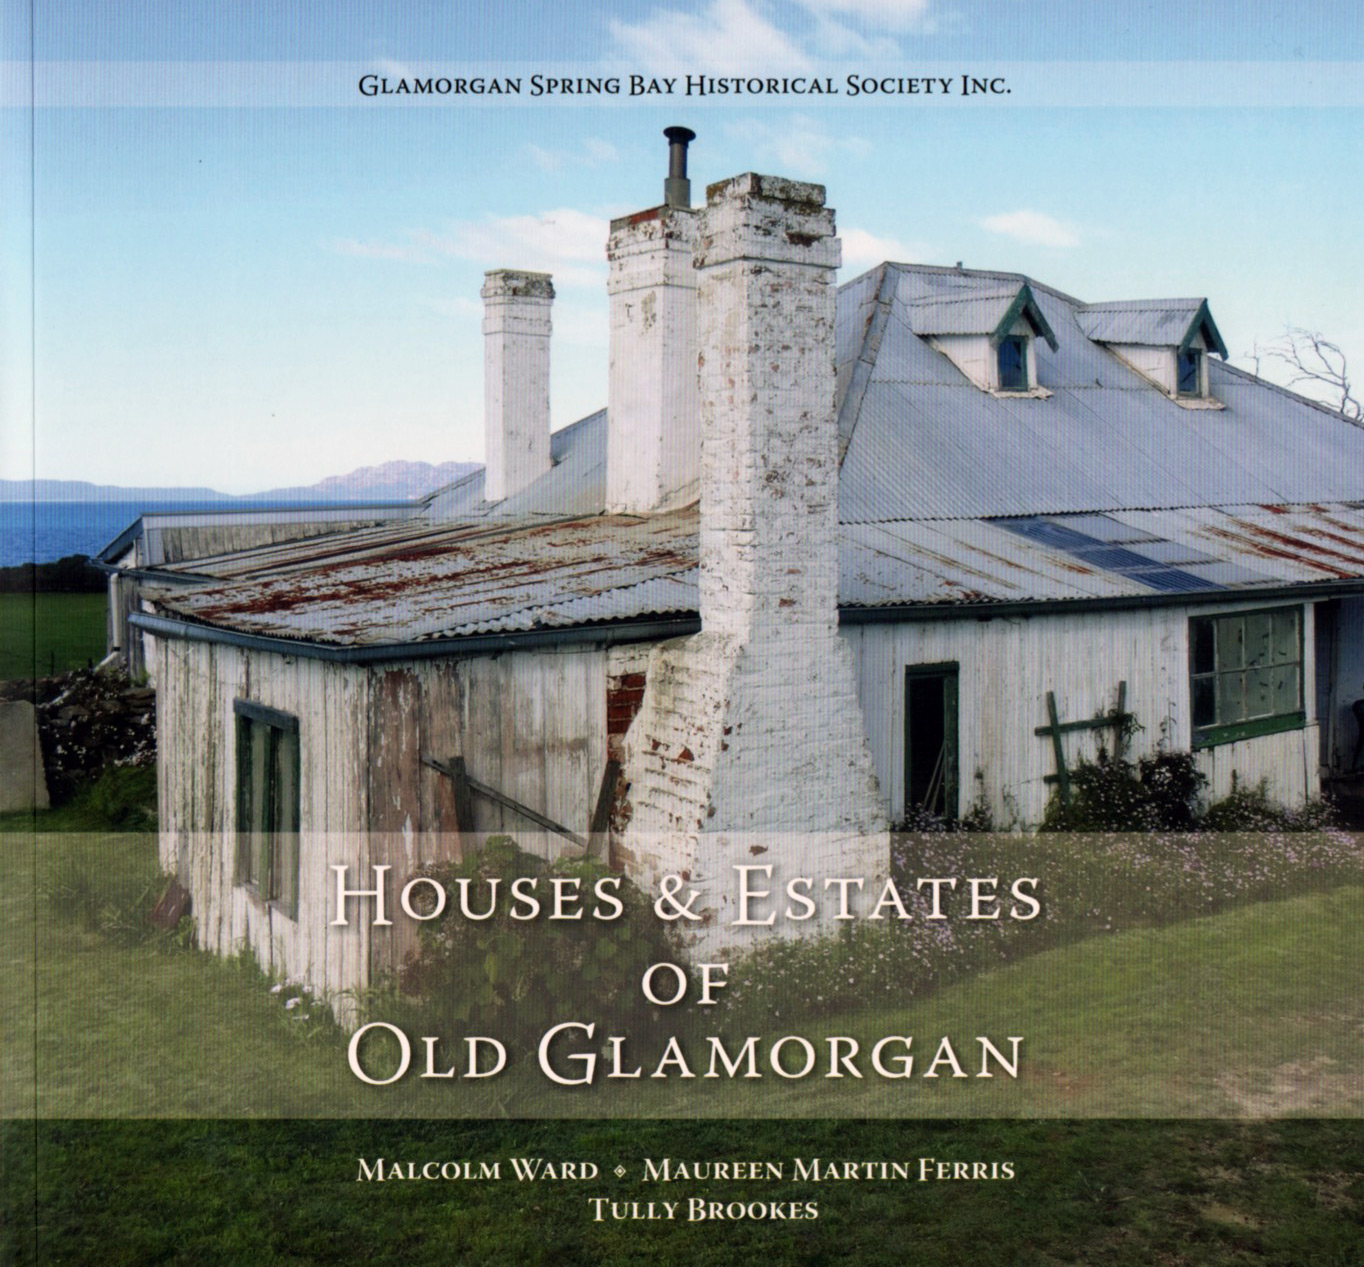 Houses & Estates of Old Glamorgan